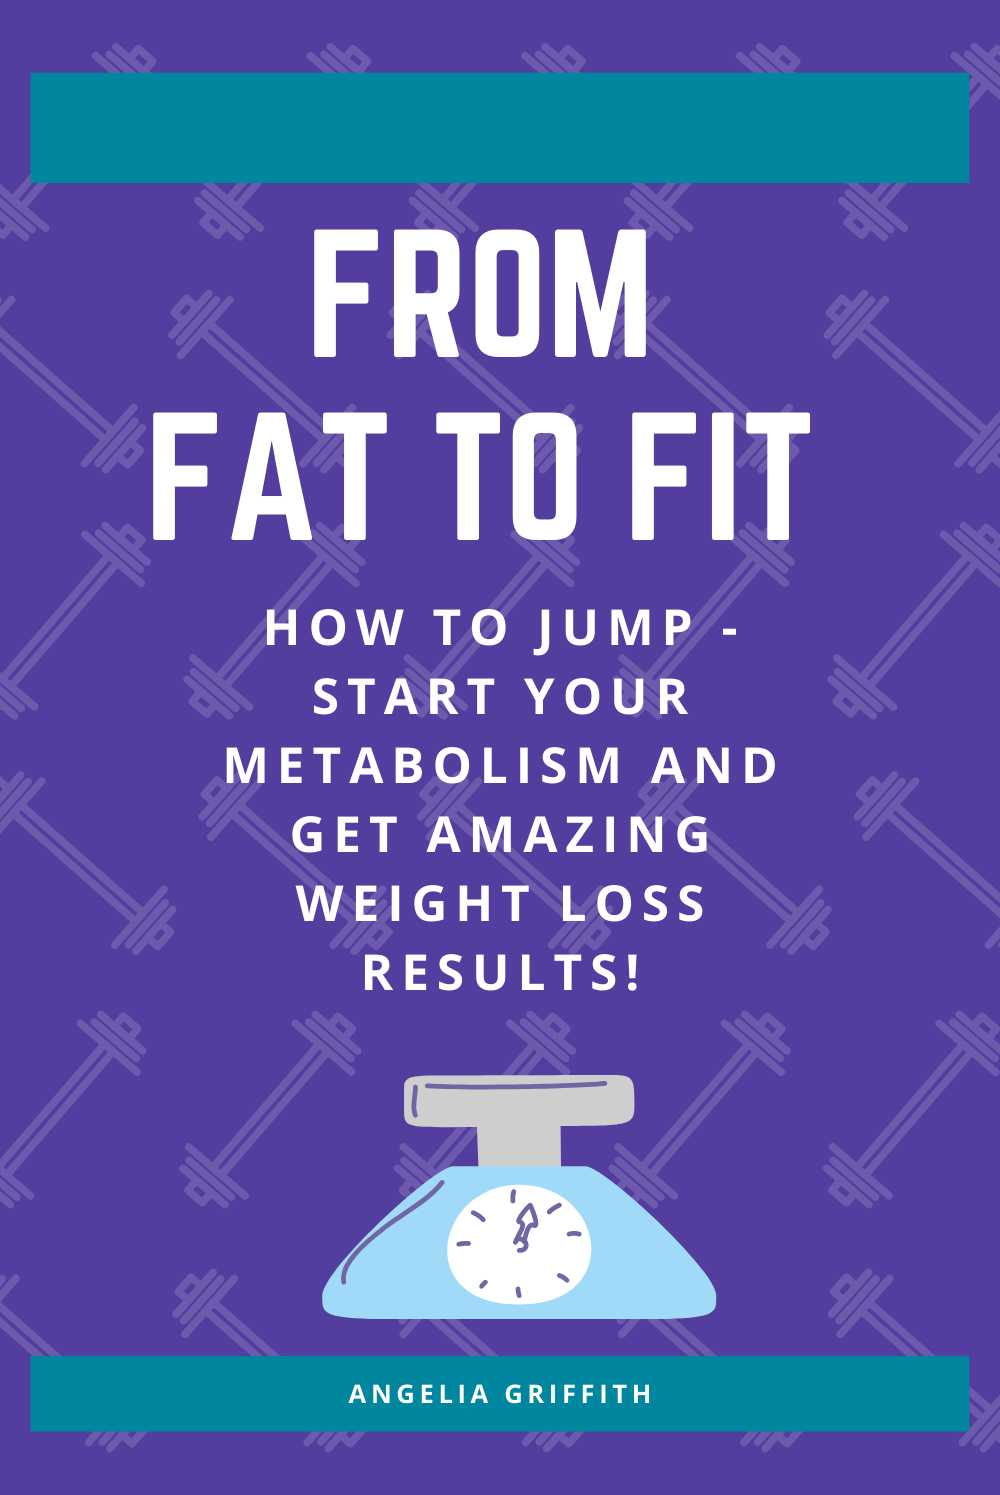 From Fat to Fit - How to Jump - Start Your Metabolism and Get Amazing Weight Loss Results!